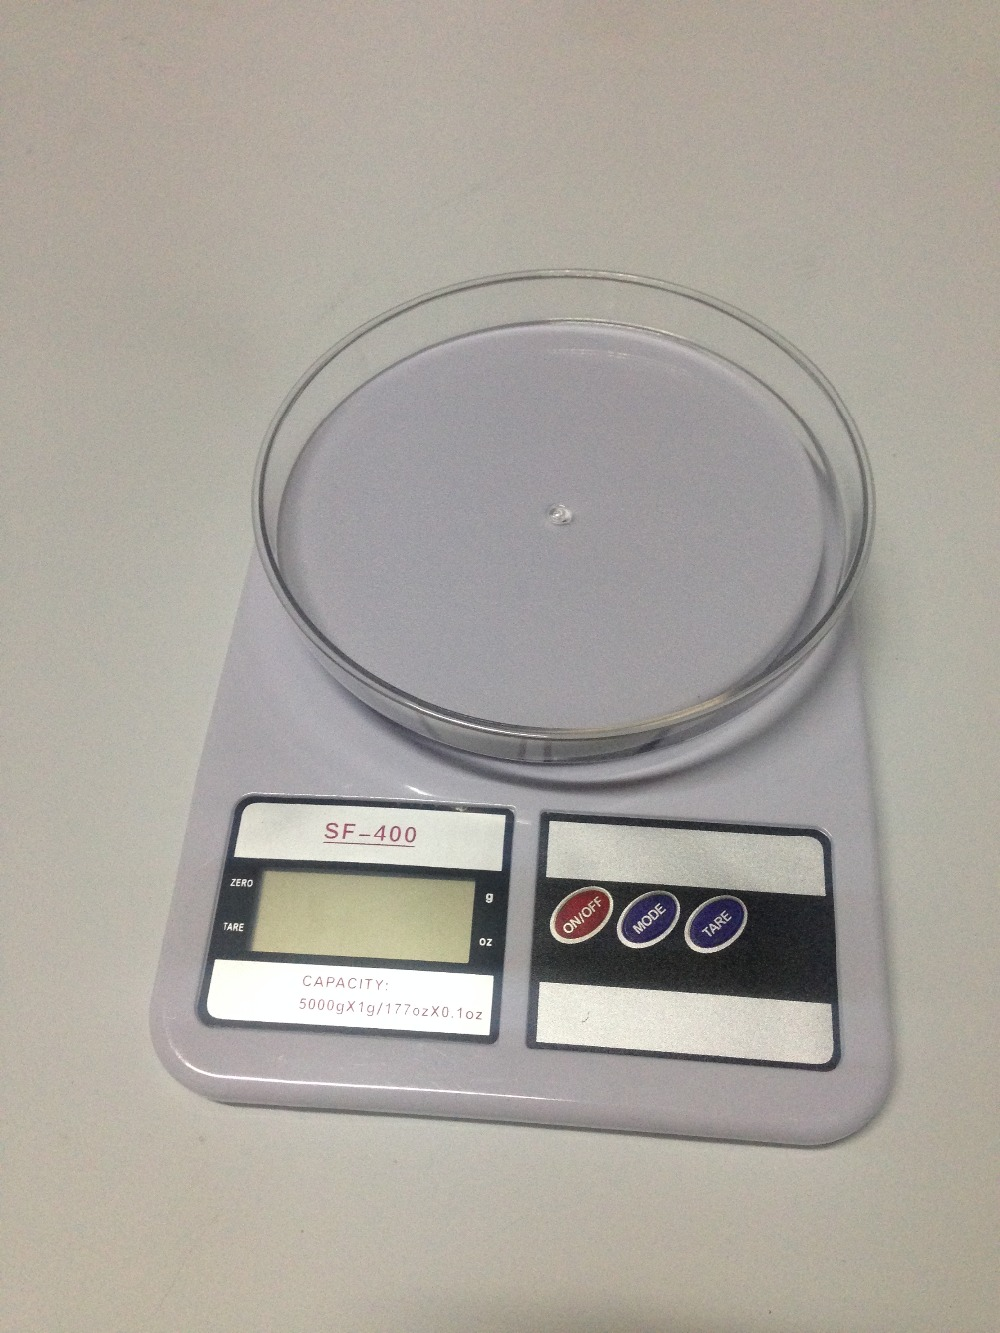 Sf 400 Digital Kitchen Scale Ceramic Tile 10kg Timbangan 1g To 5kg Abs Plastic Lcd Large Capacity Diet Food